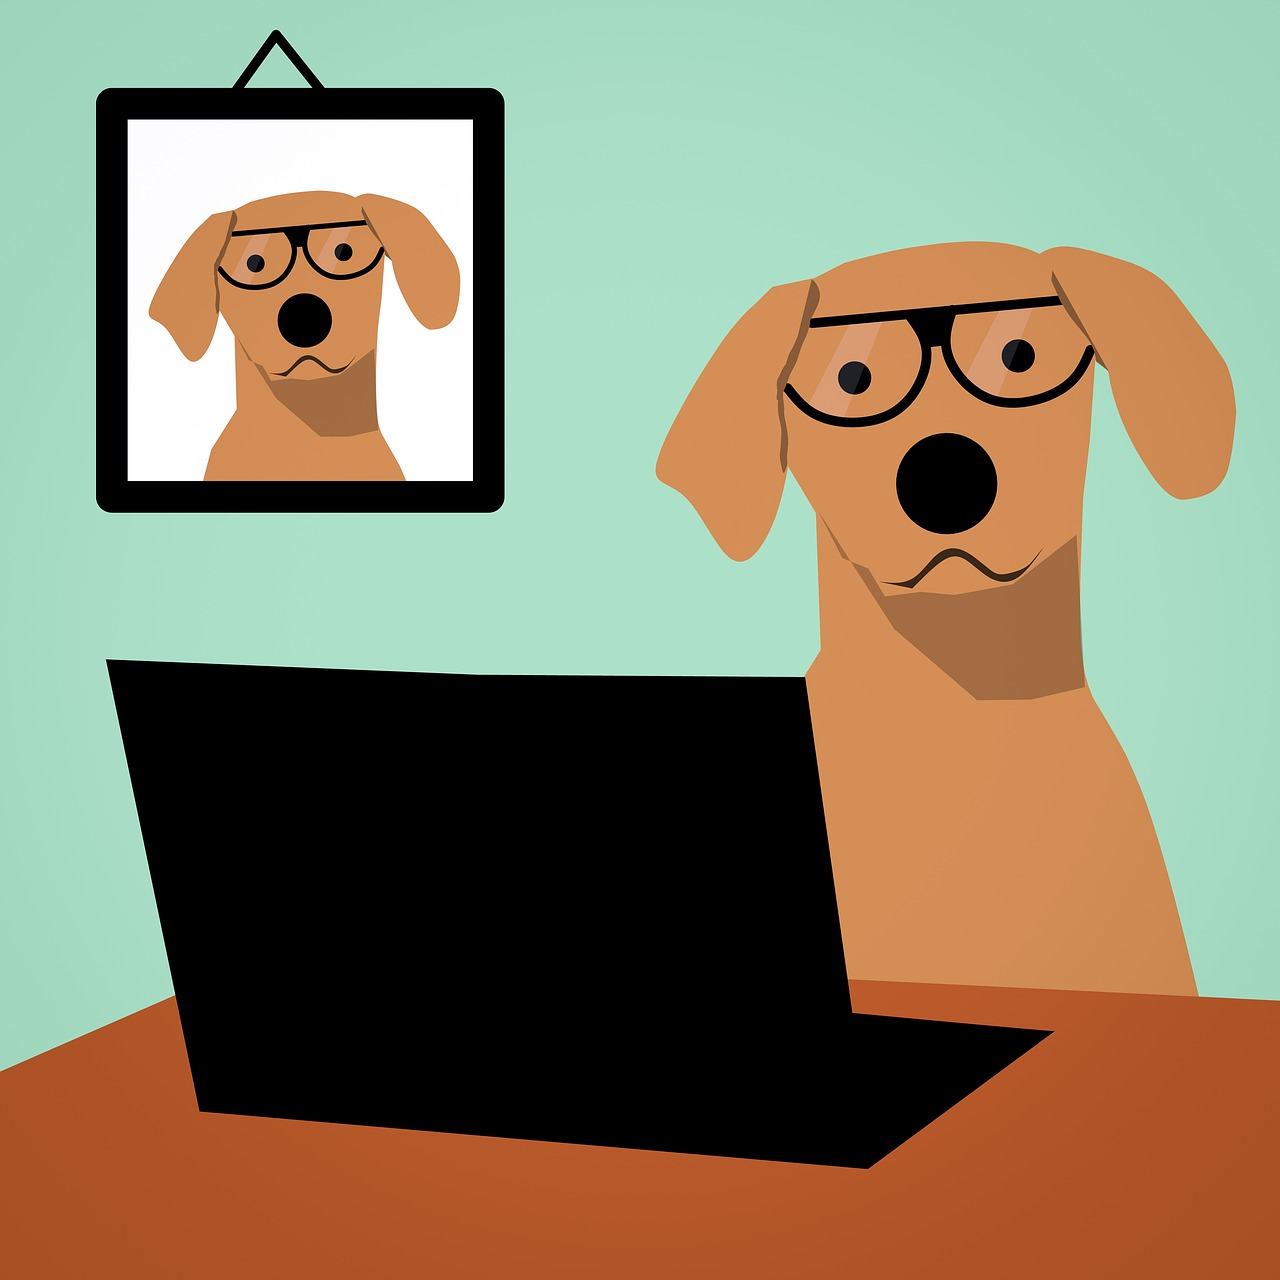 dog with reading glasses on computer sharing realtoughcandy.io affiliate program link